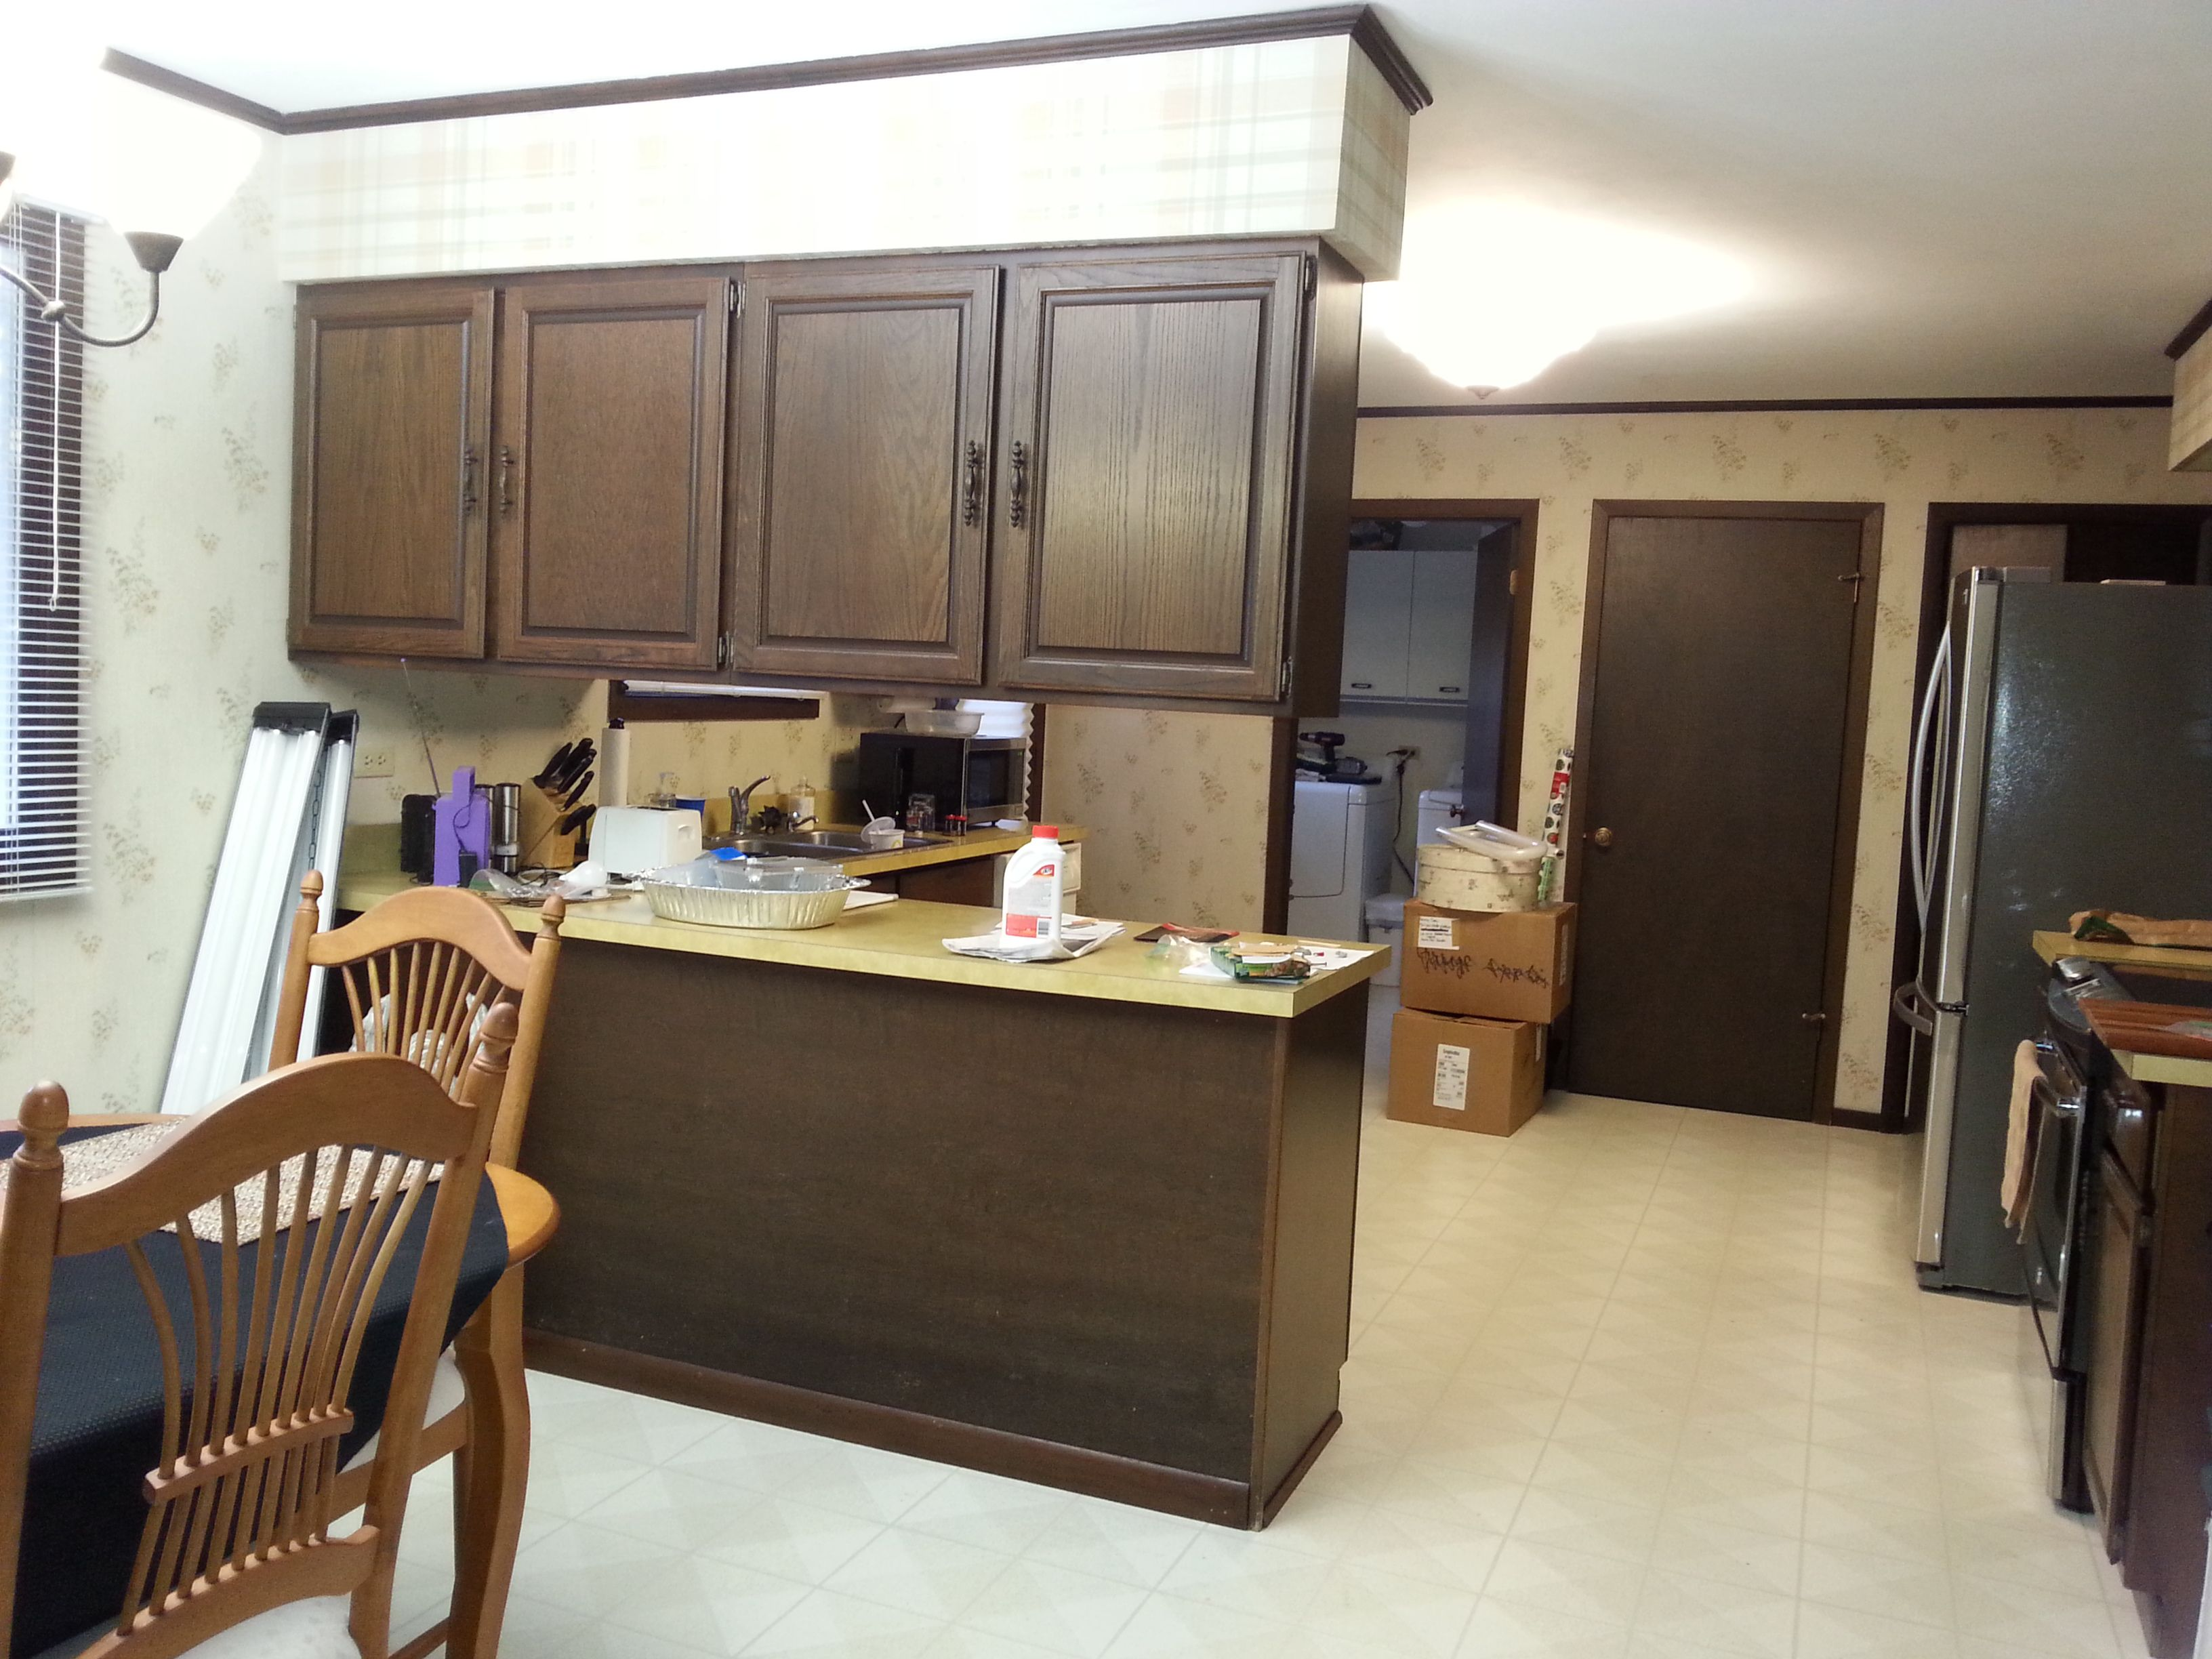 1974 Dark Kitchen To Be Redone Demo Includes Removing Cabinets 2 Layers Of Wall Paper 2 Layers Of Sheet Laminate Laminate Flooring Flooring Dark Kitchen